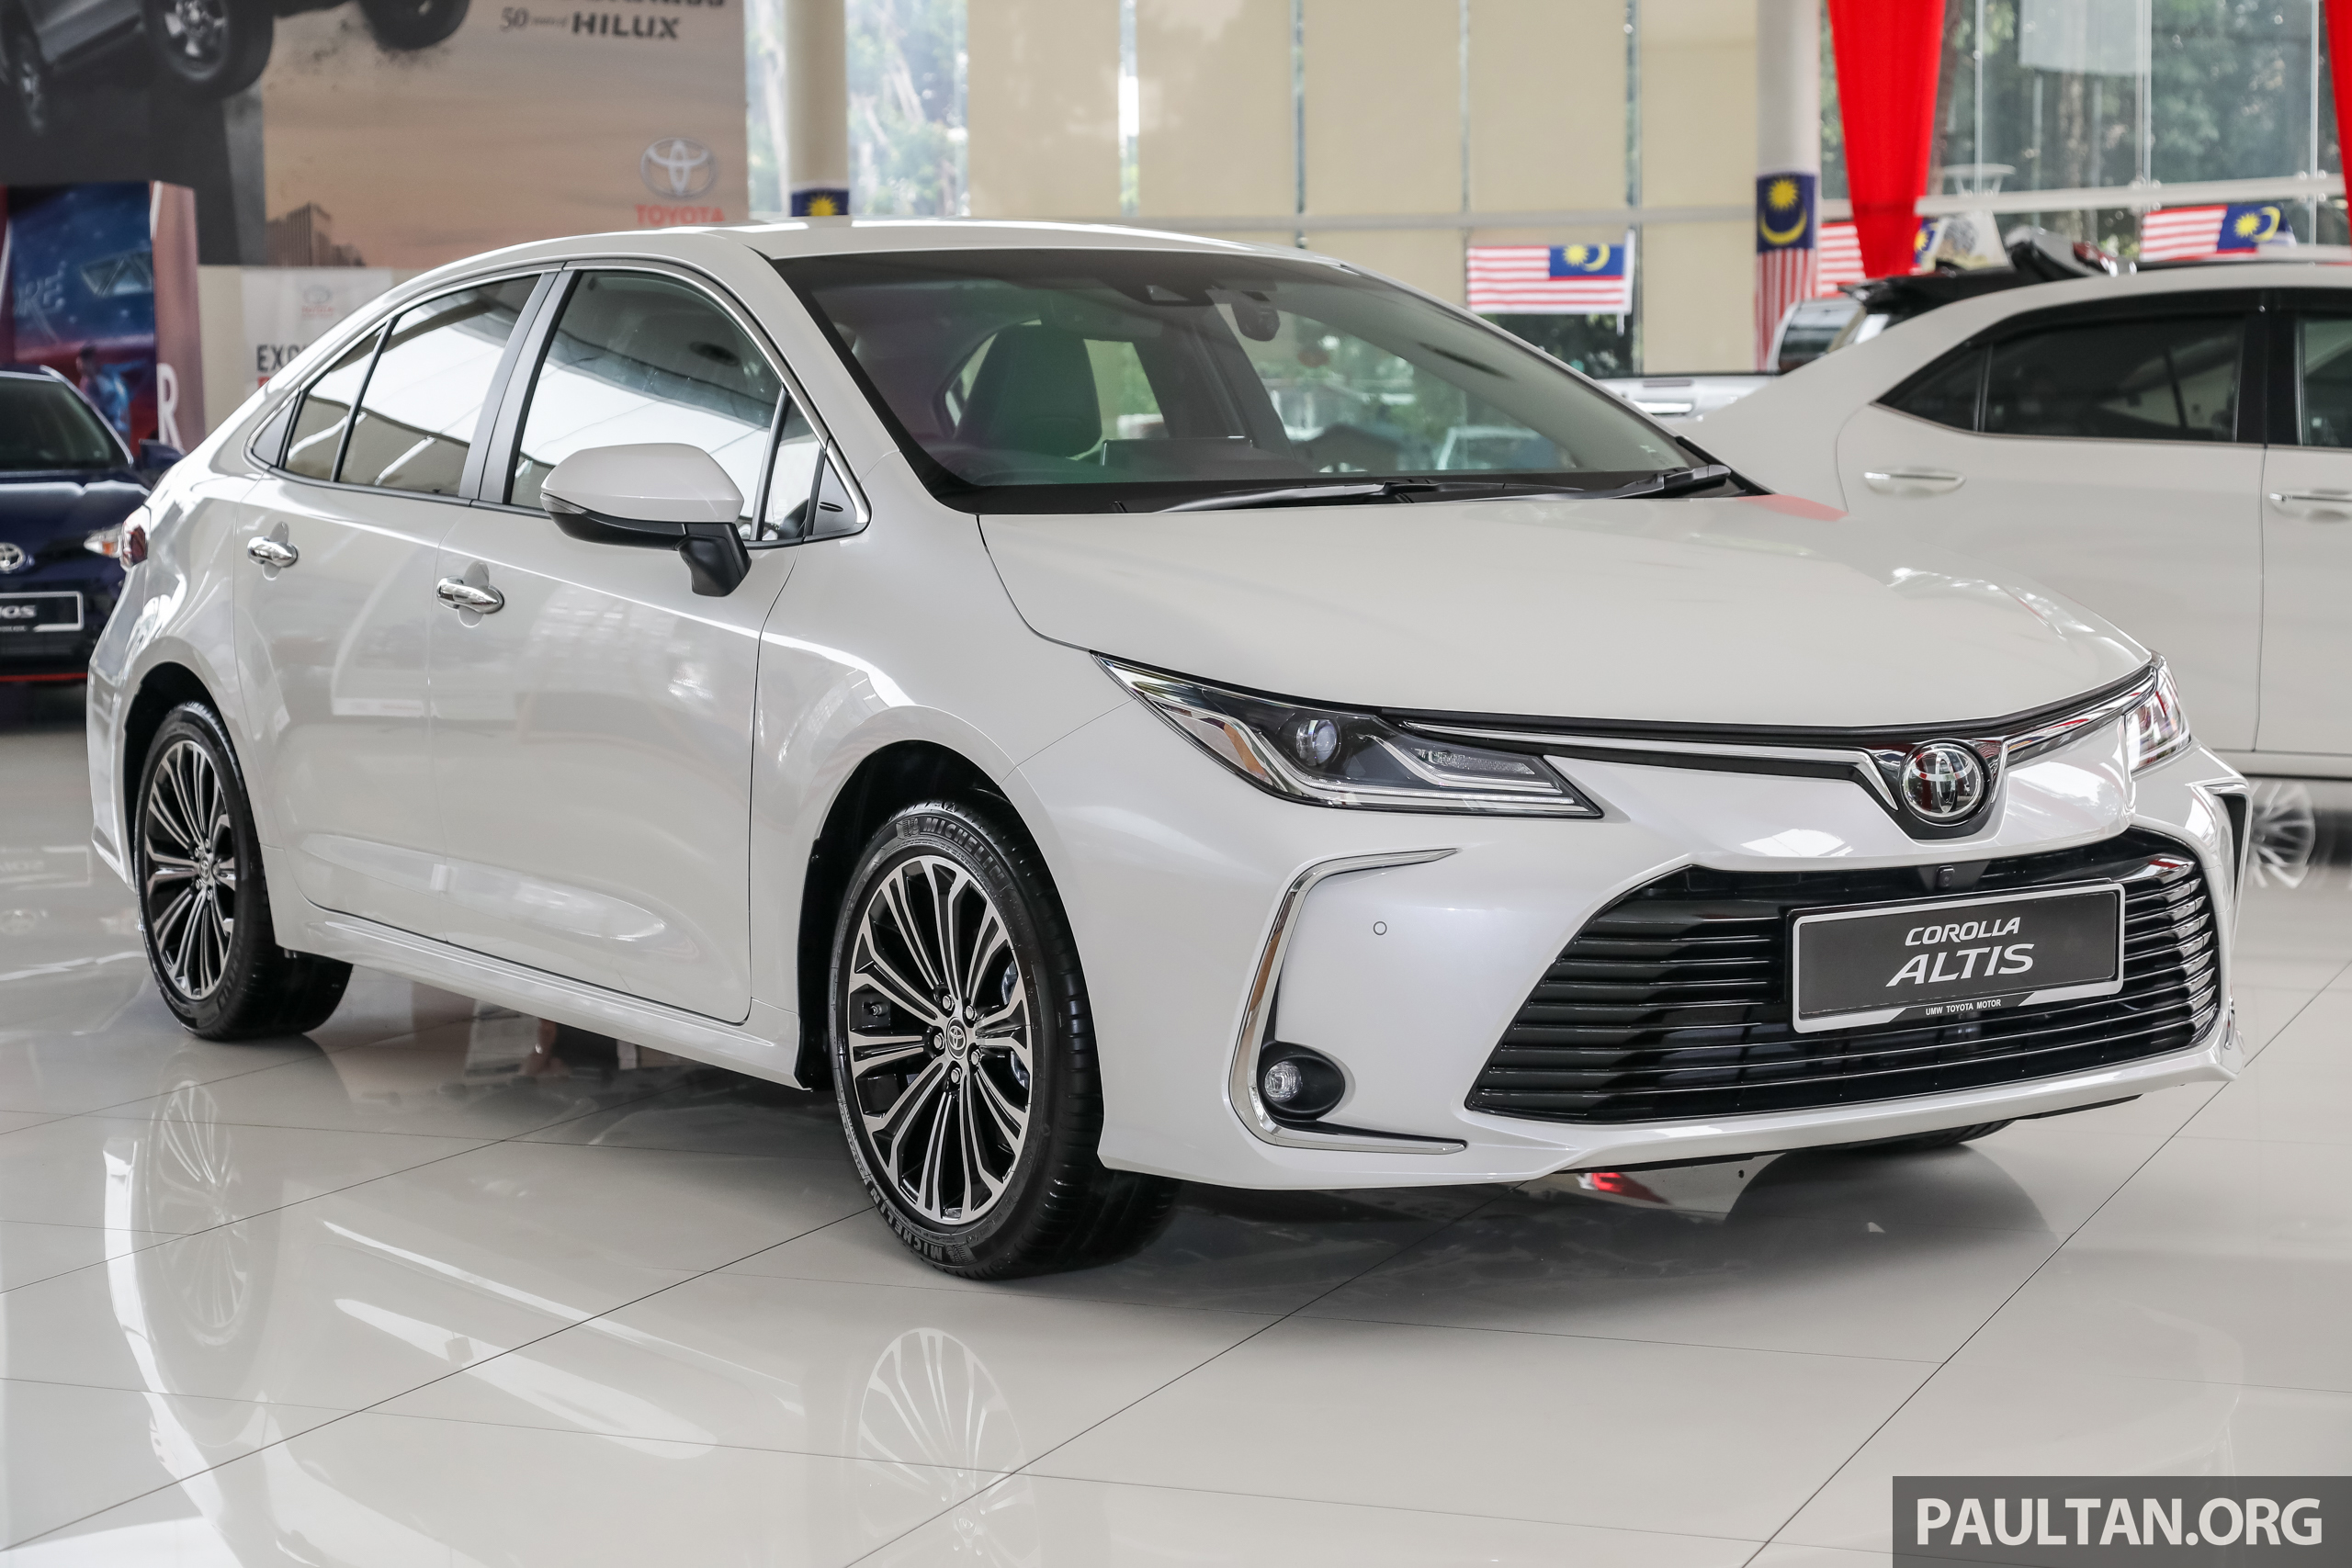 Toyota Capital Malaysia Offers Automatic Six Month Payment Holiday To Customers From April 1 To Sept 30 Paultan Org